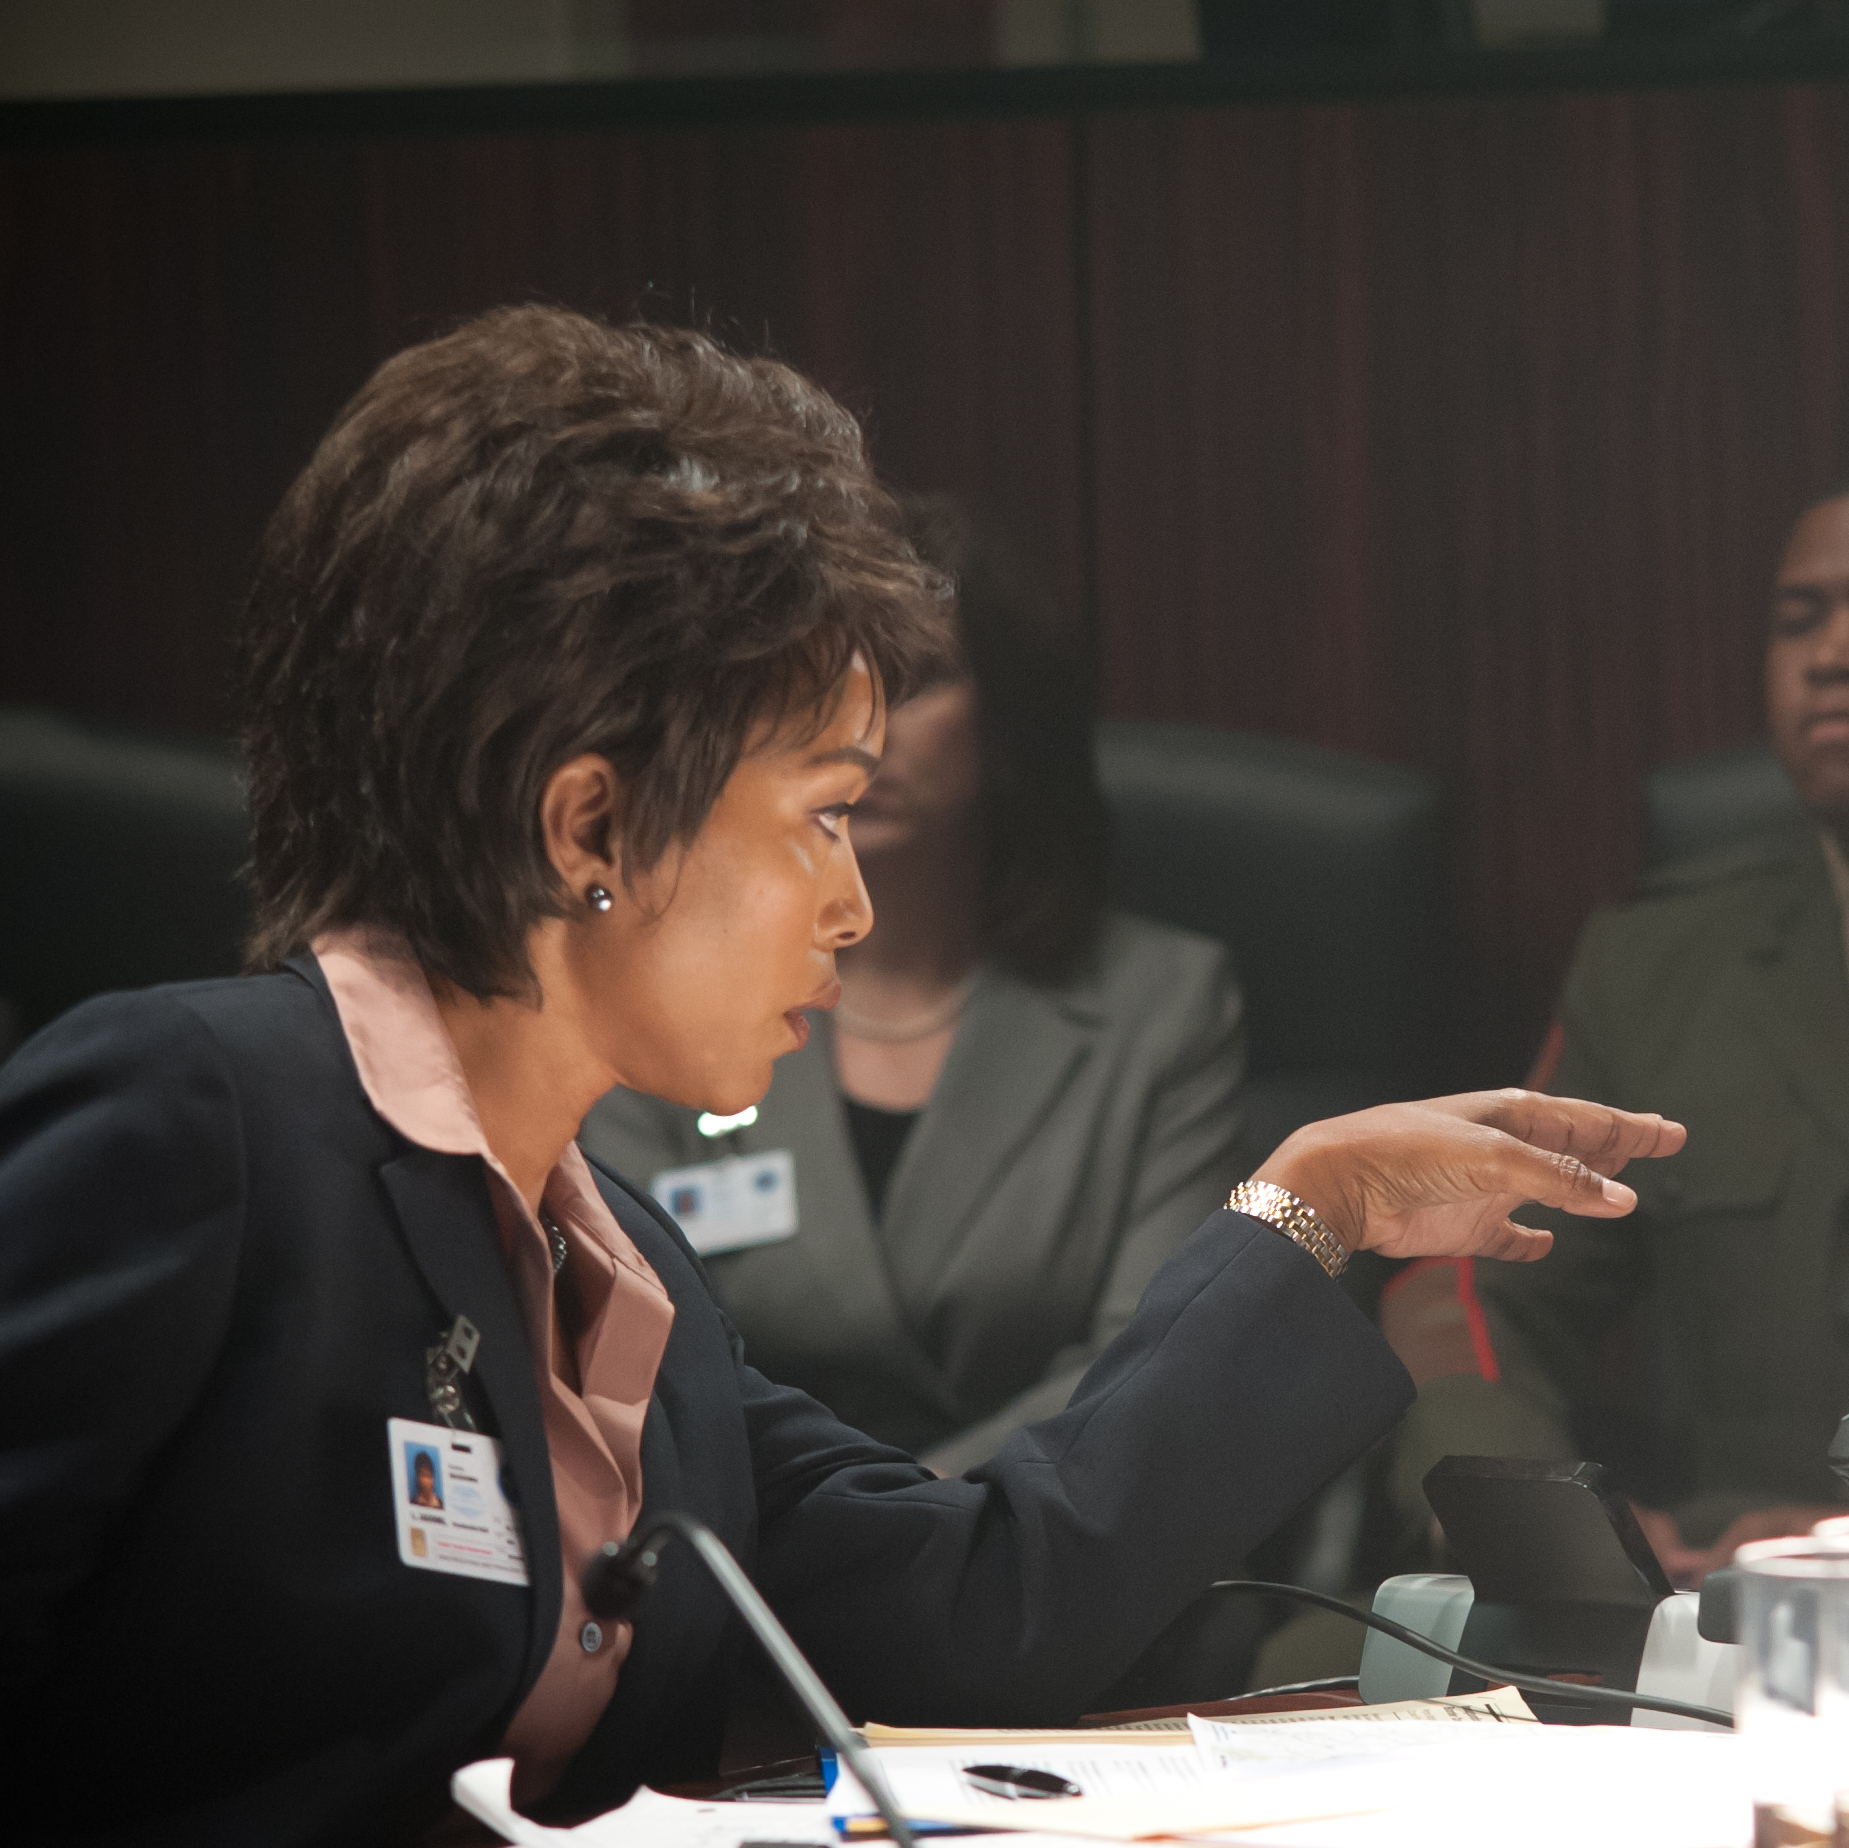 Angela Bassett as Secret Service Director Lynn Jacobs and Morgan Freeman as Speaker Allan Trumbull.